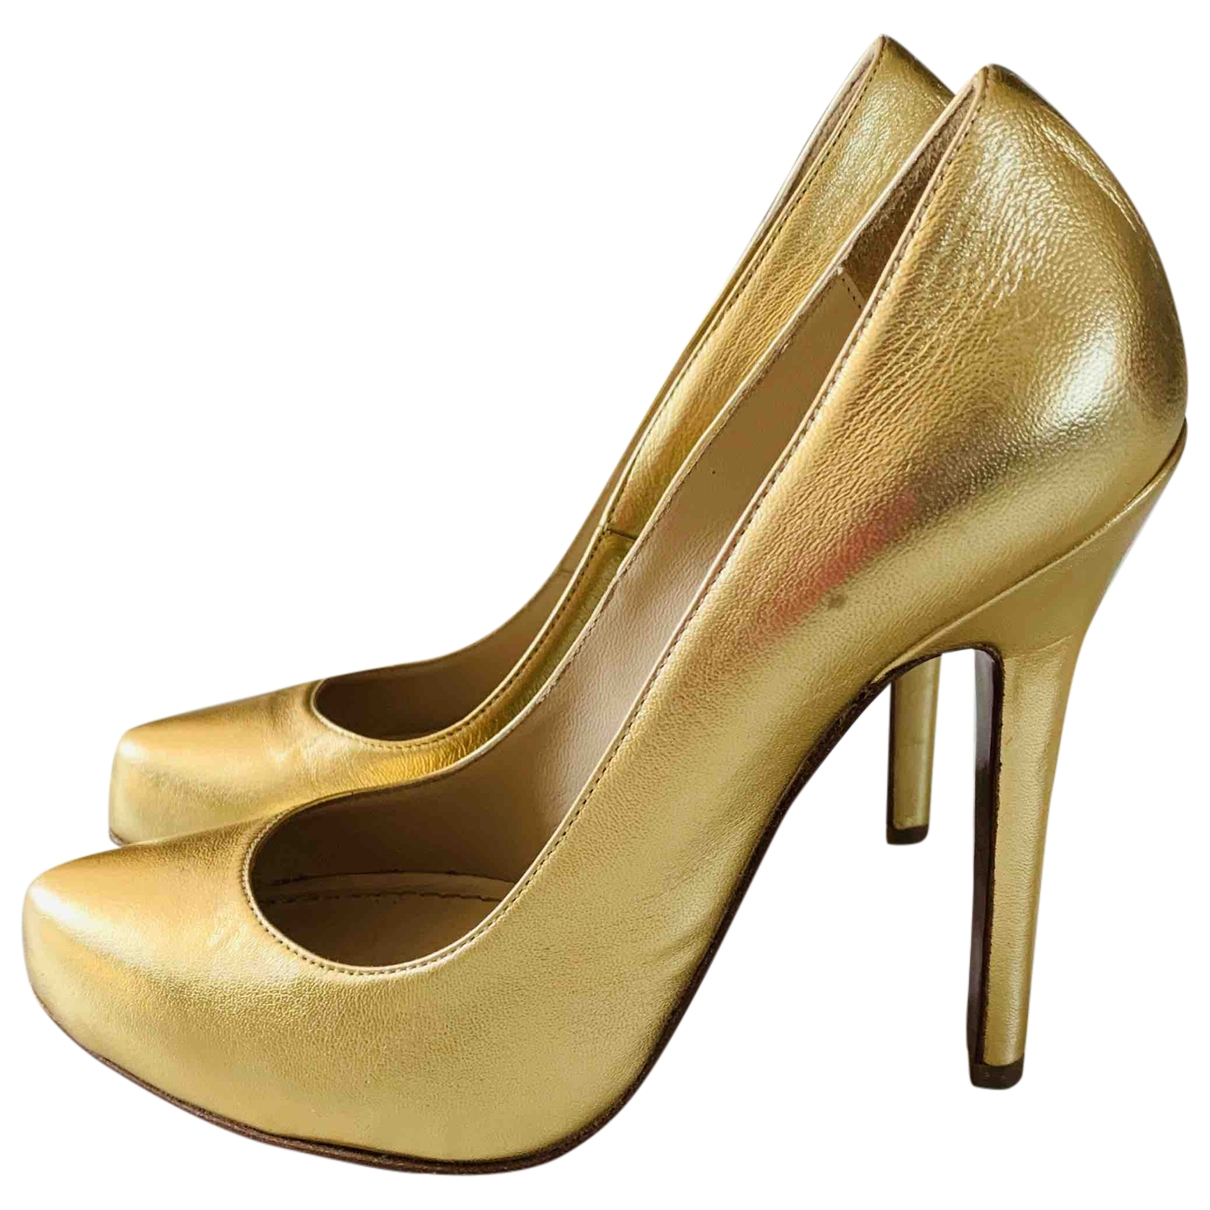 Pinko \N Gold Leather Heels for Women 37 EU